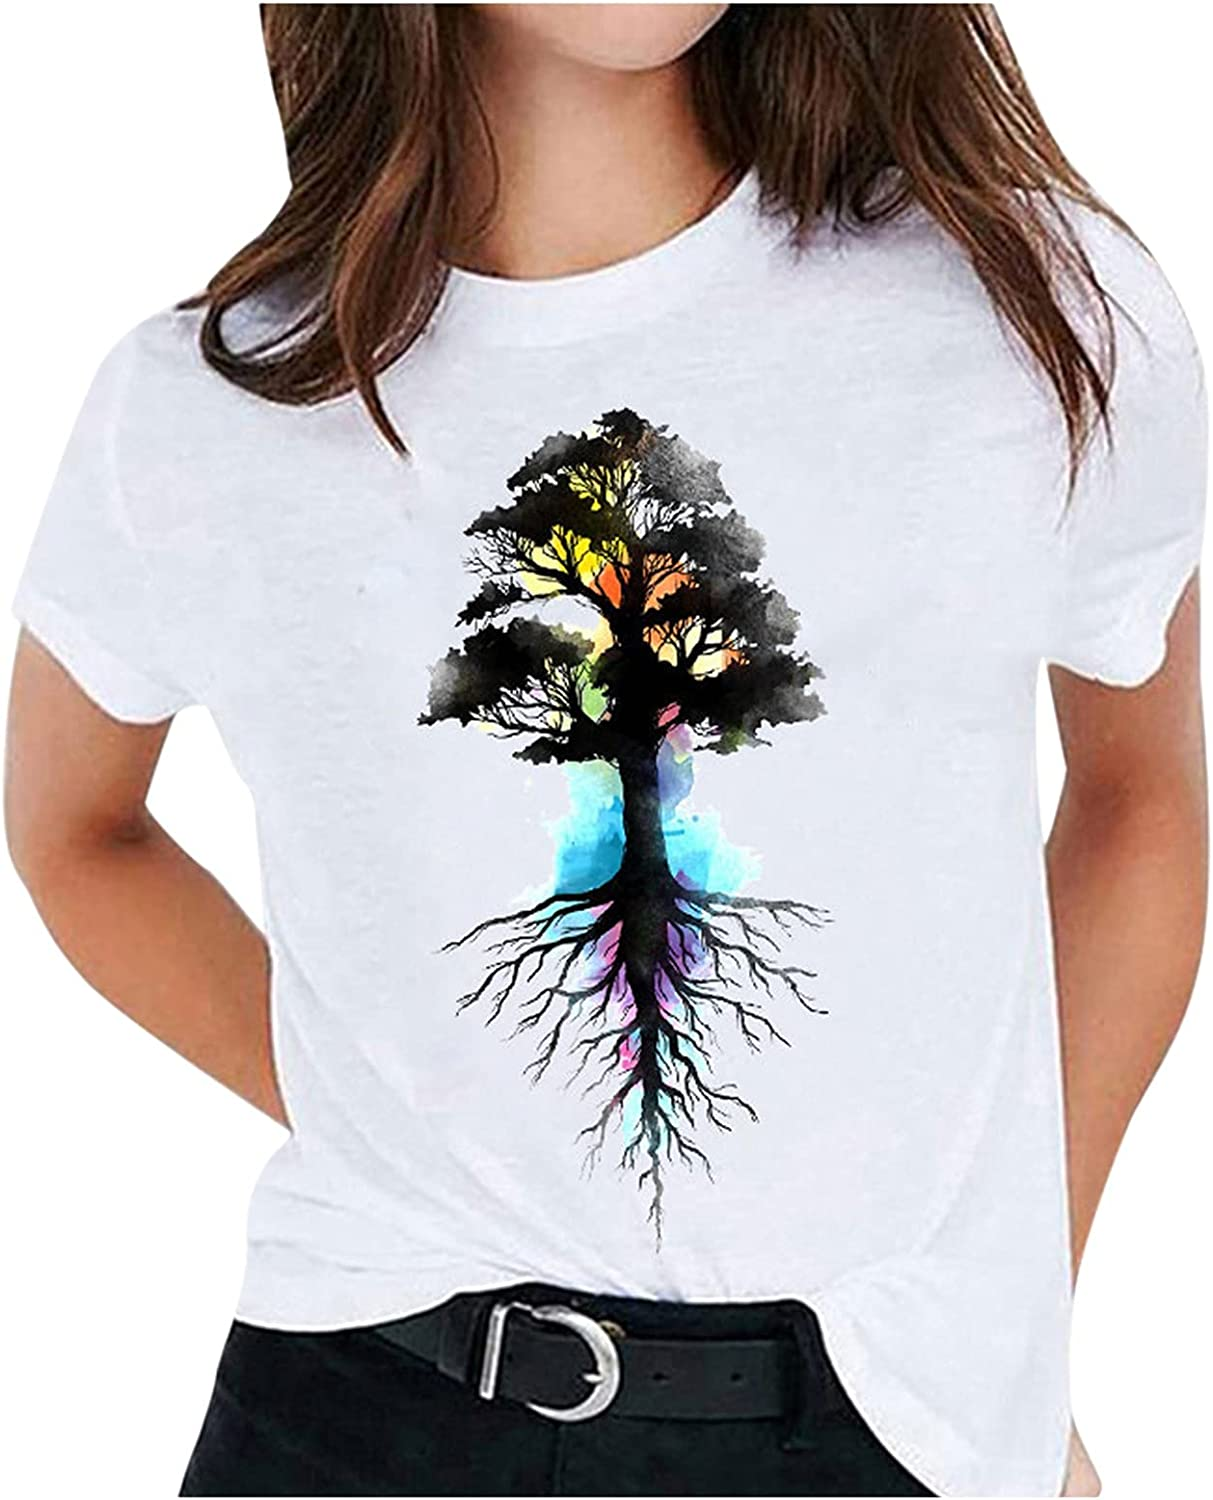 FANGTION T-Shirt for Women Elegant Feather Max 63% OFF Short S Print Max 50% OFF Summer